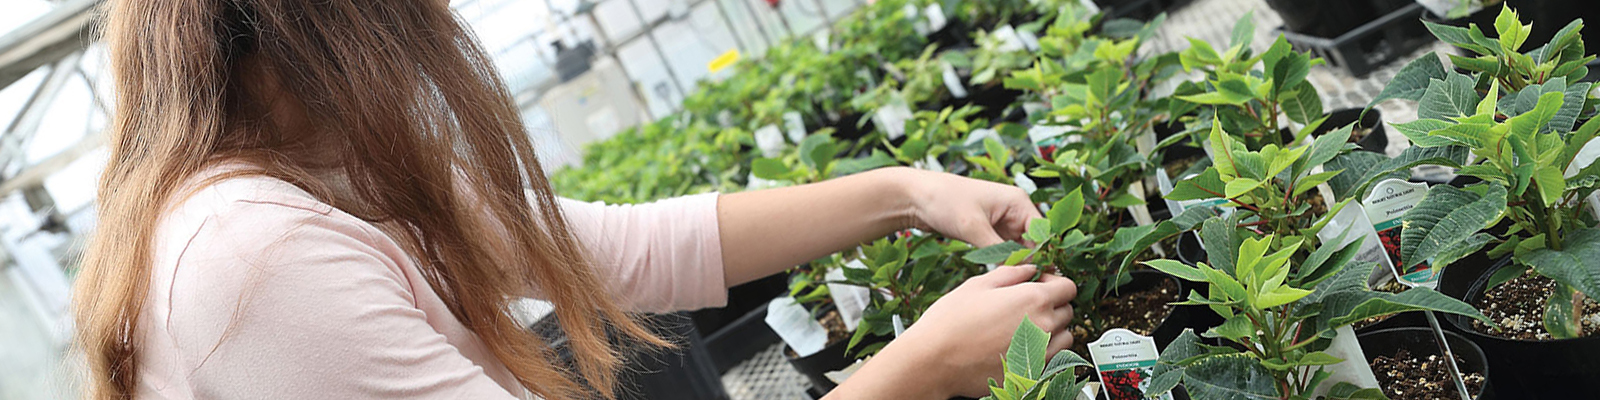 female student tending to plants in greenhouse